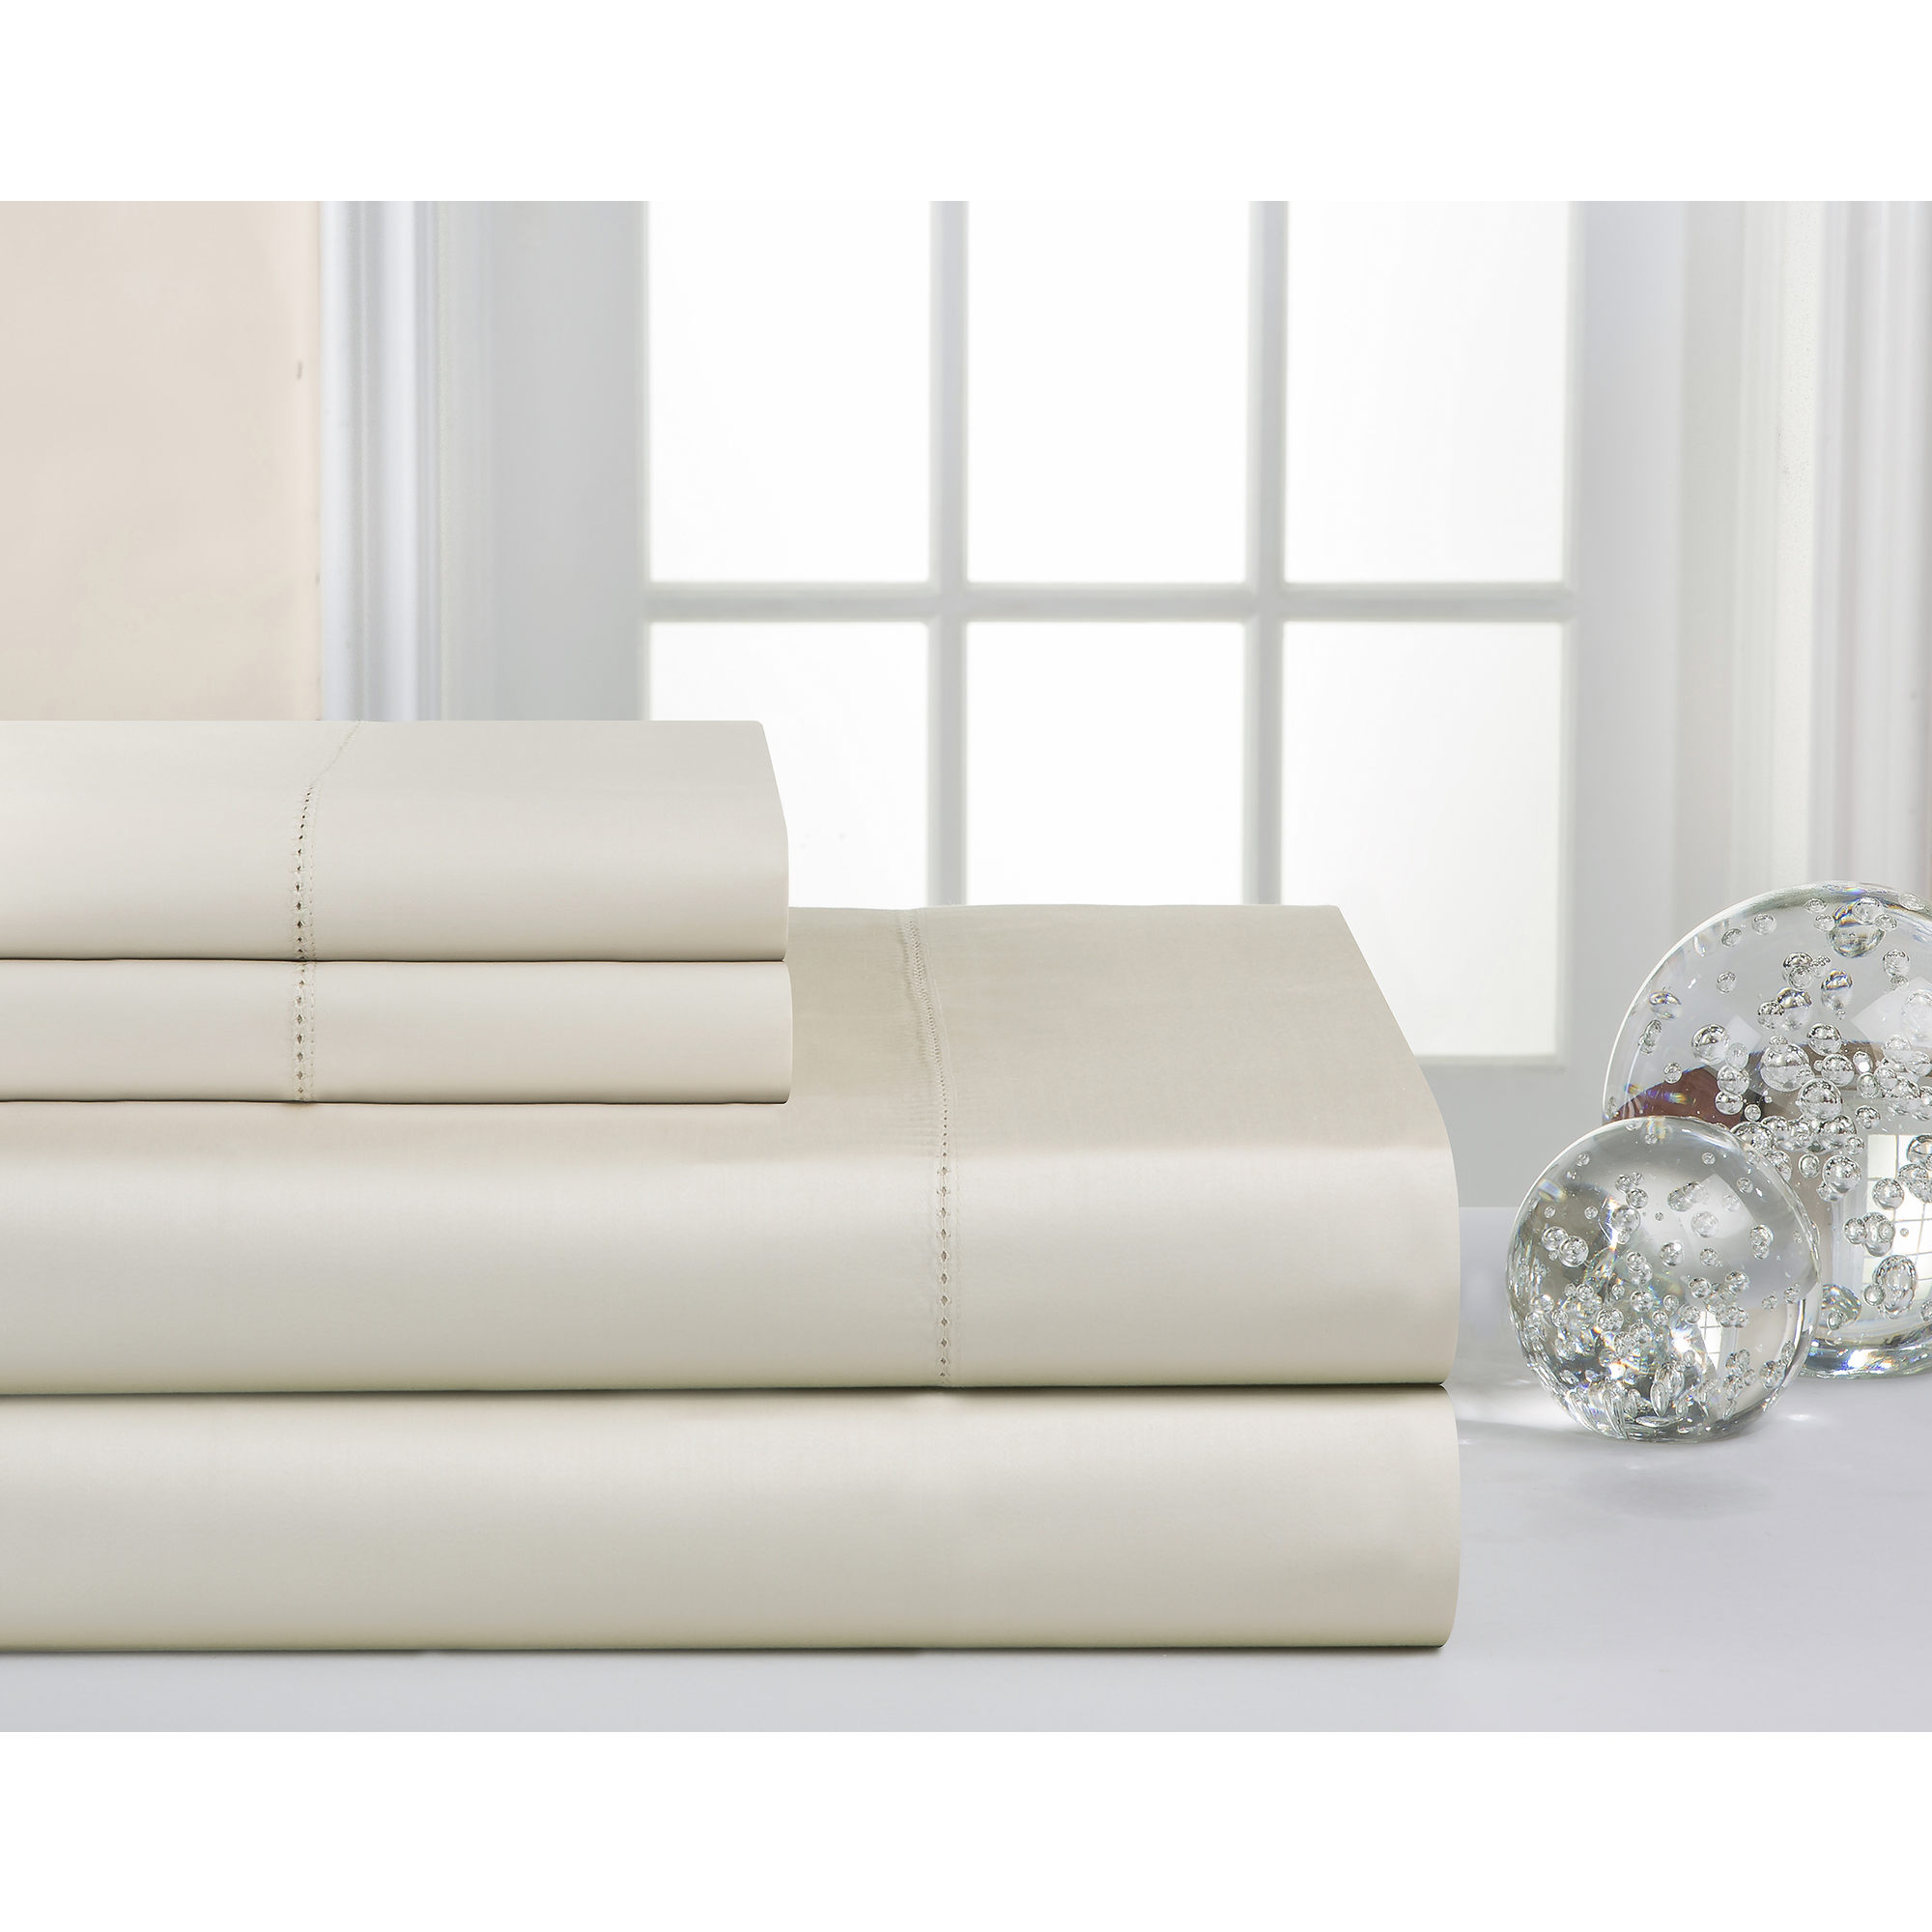 Dazzling cotton percale sheets with Amazing Combine Color Sheets Ideas